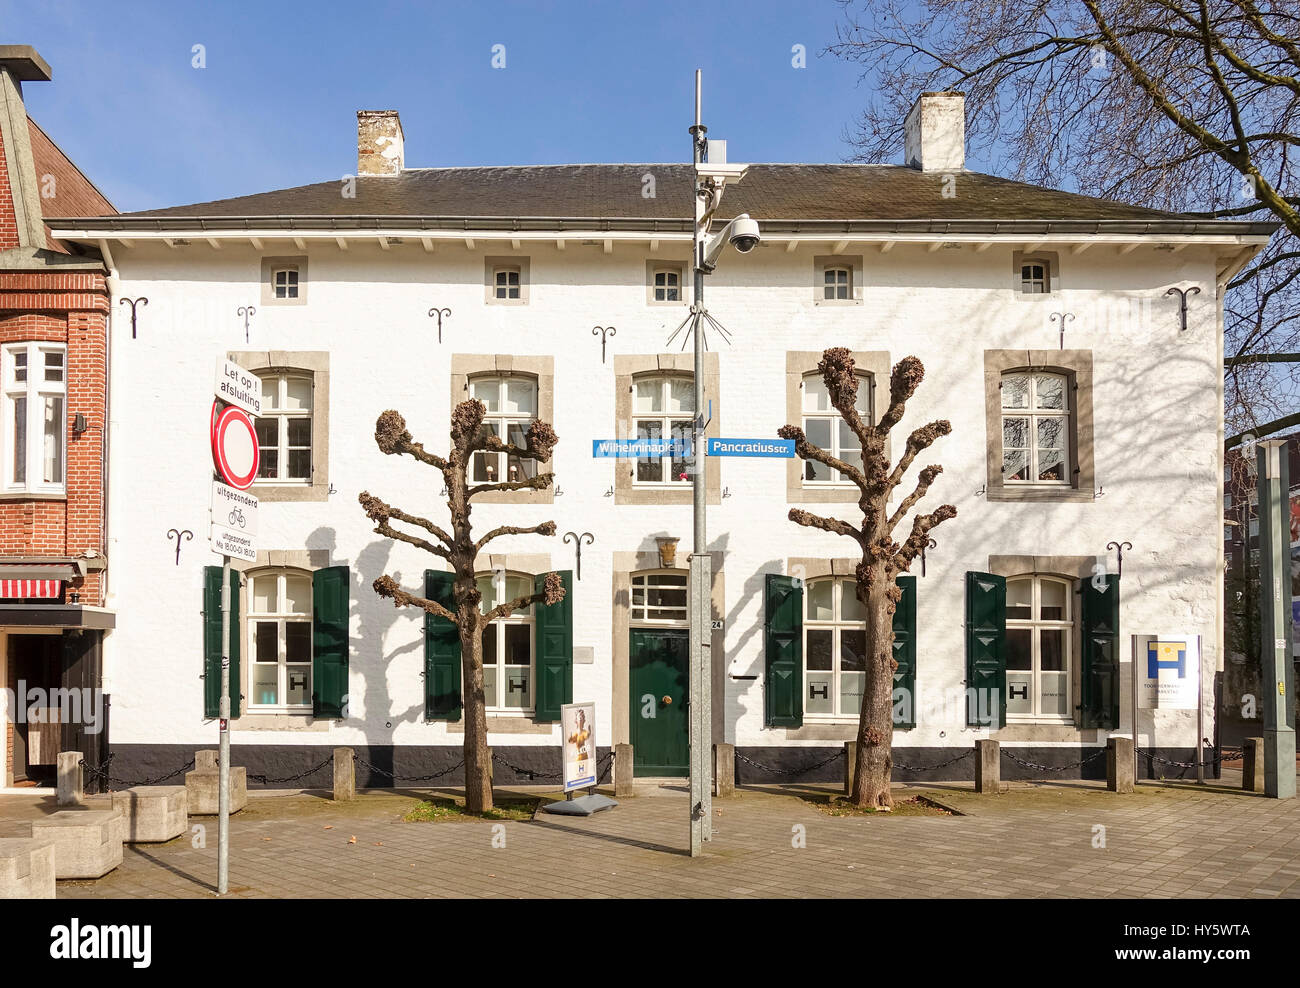 Old dutch house, 17 century, Toon Hermans Huis Parkstad organisation, Heerlen, Limburg, Netherlands - Stock Image